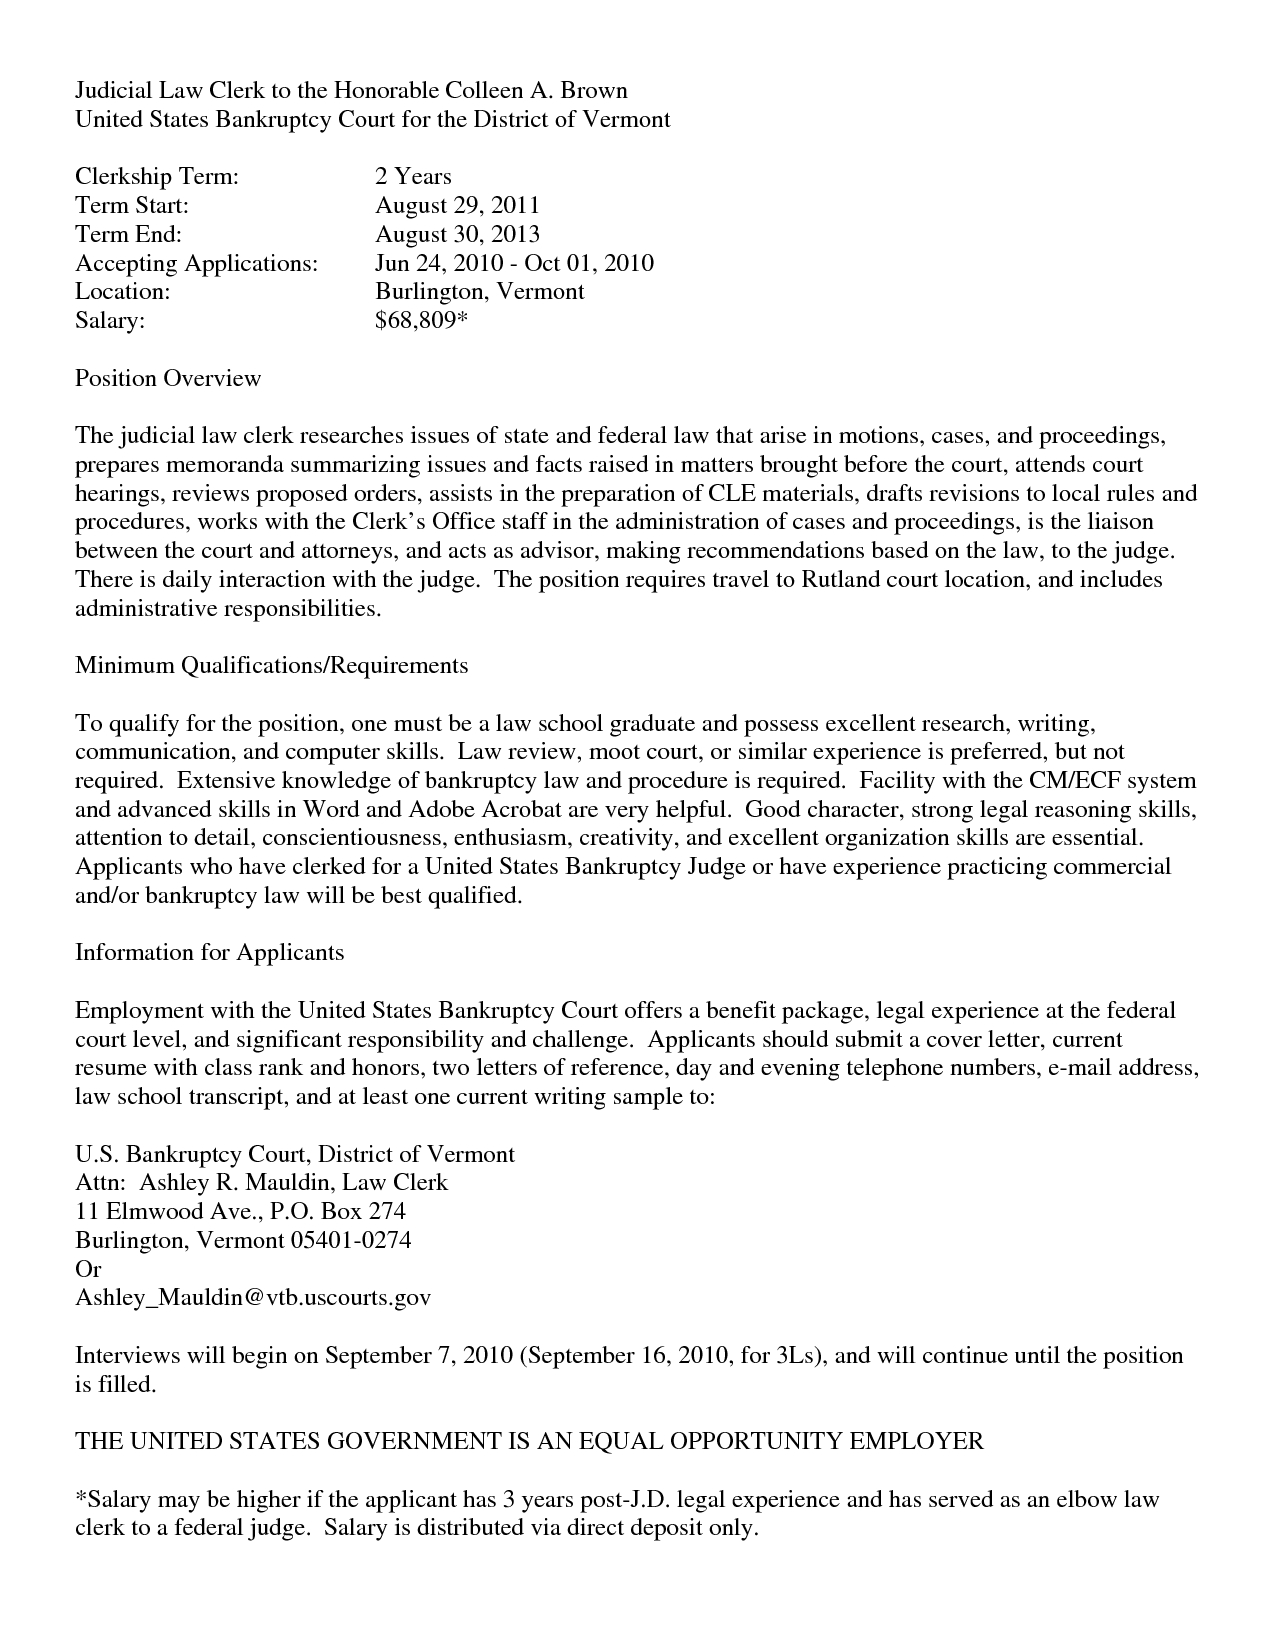 Business Referral Letter Template - Re Mendation Letter Sample for Job Applicationreference Letter